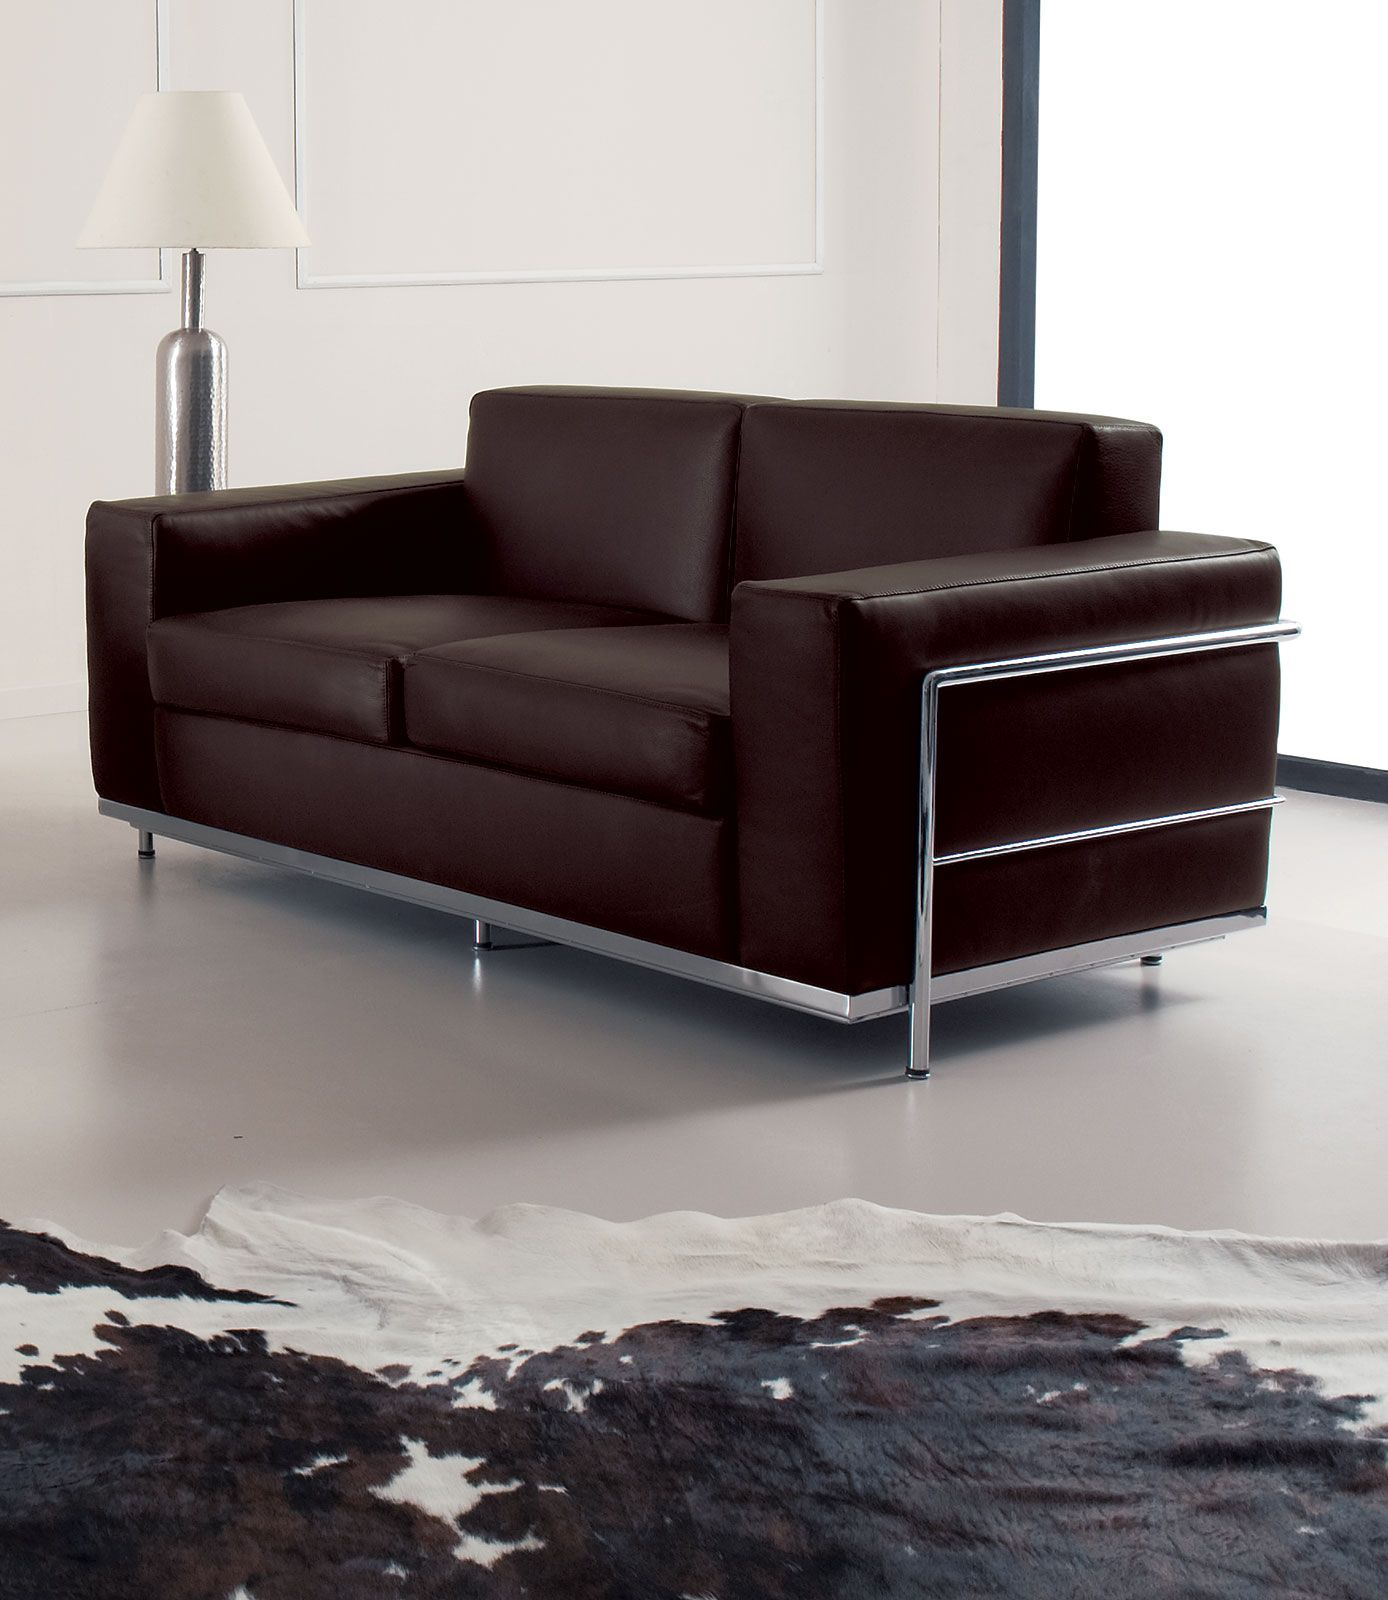 Cook 2 Seater Modern Leather Sofa Shop Online Modern Leather Sofa Sofa Shop Sofa Design